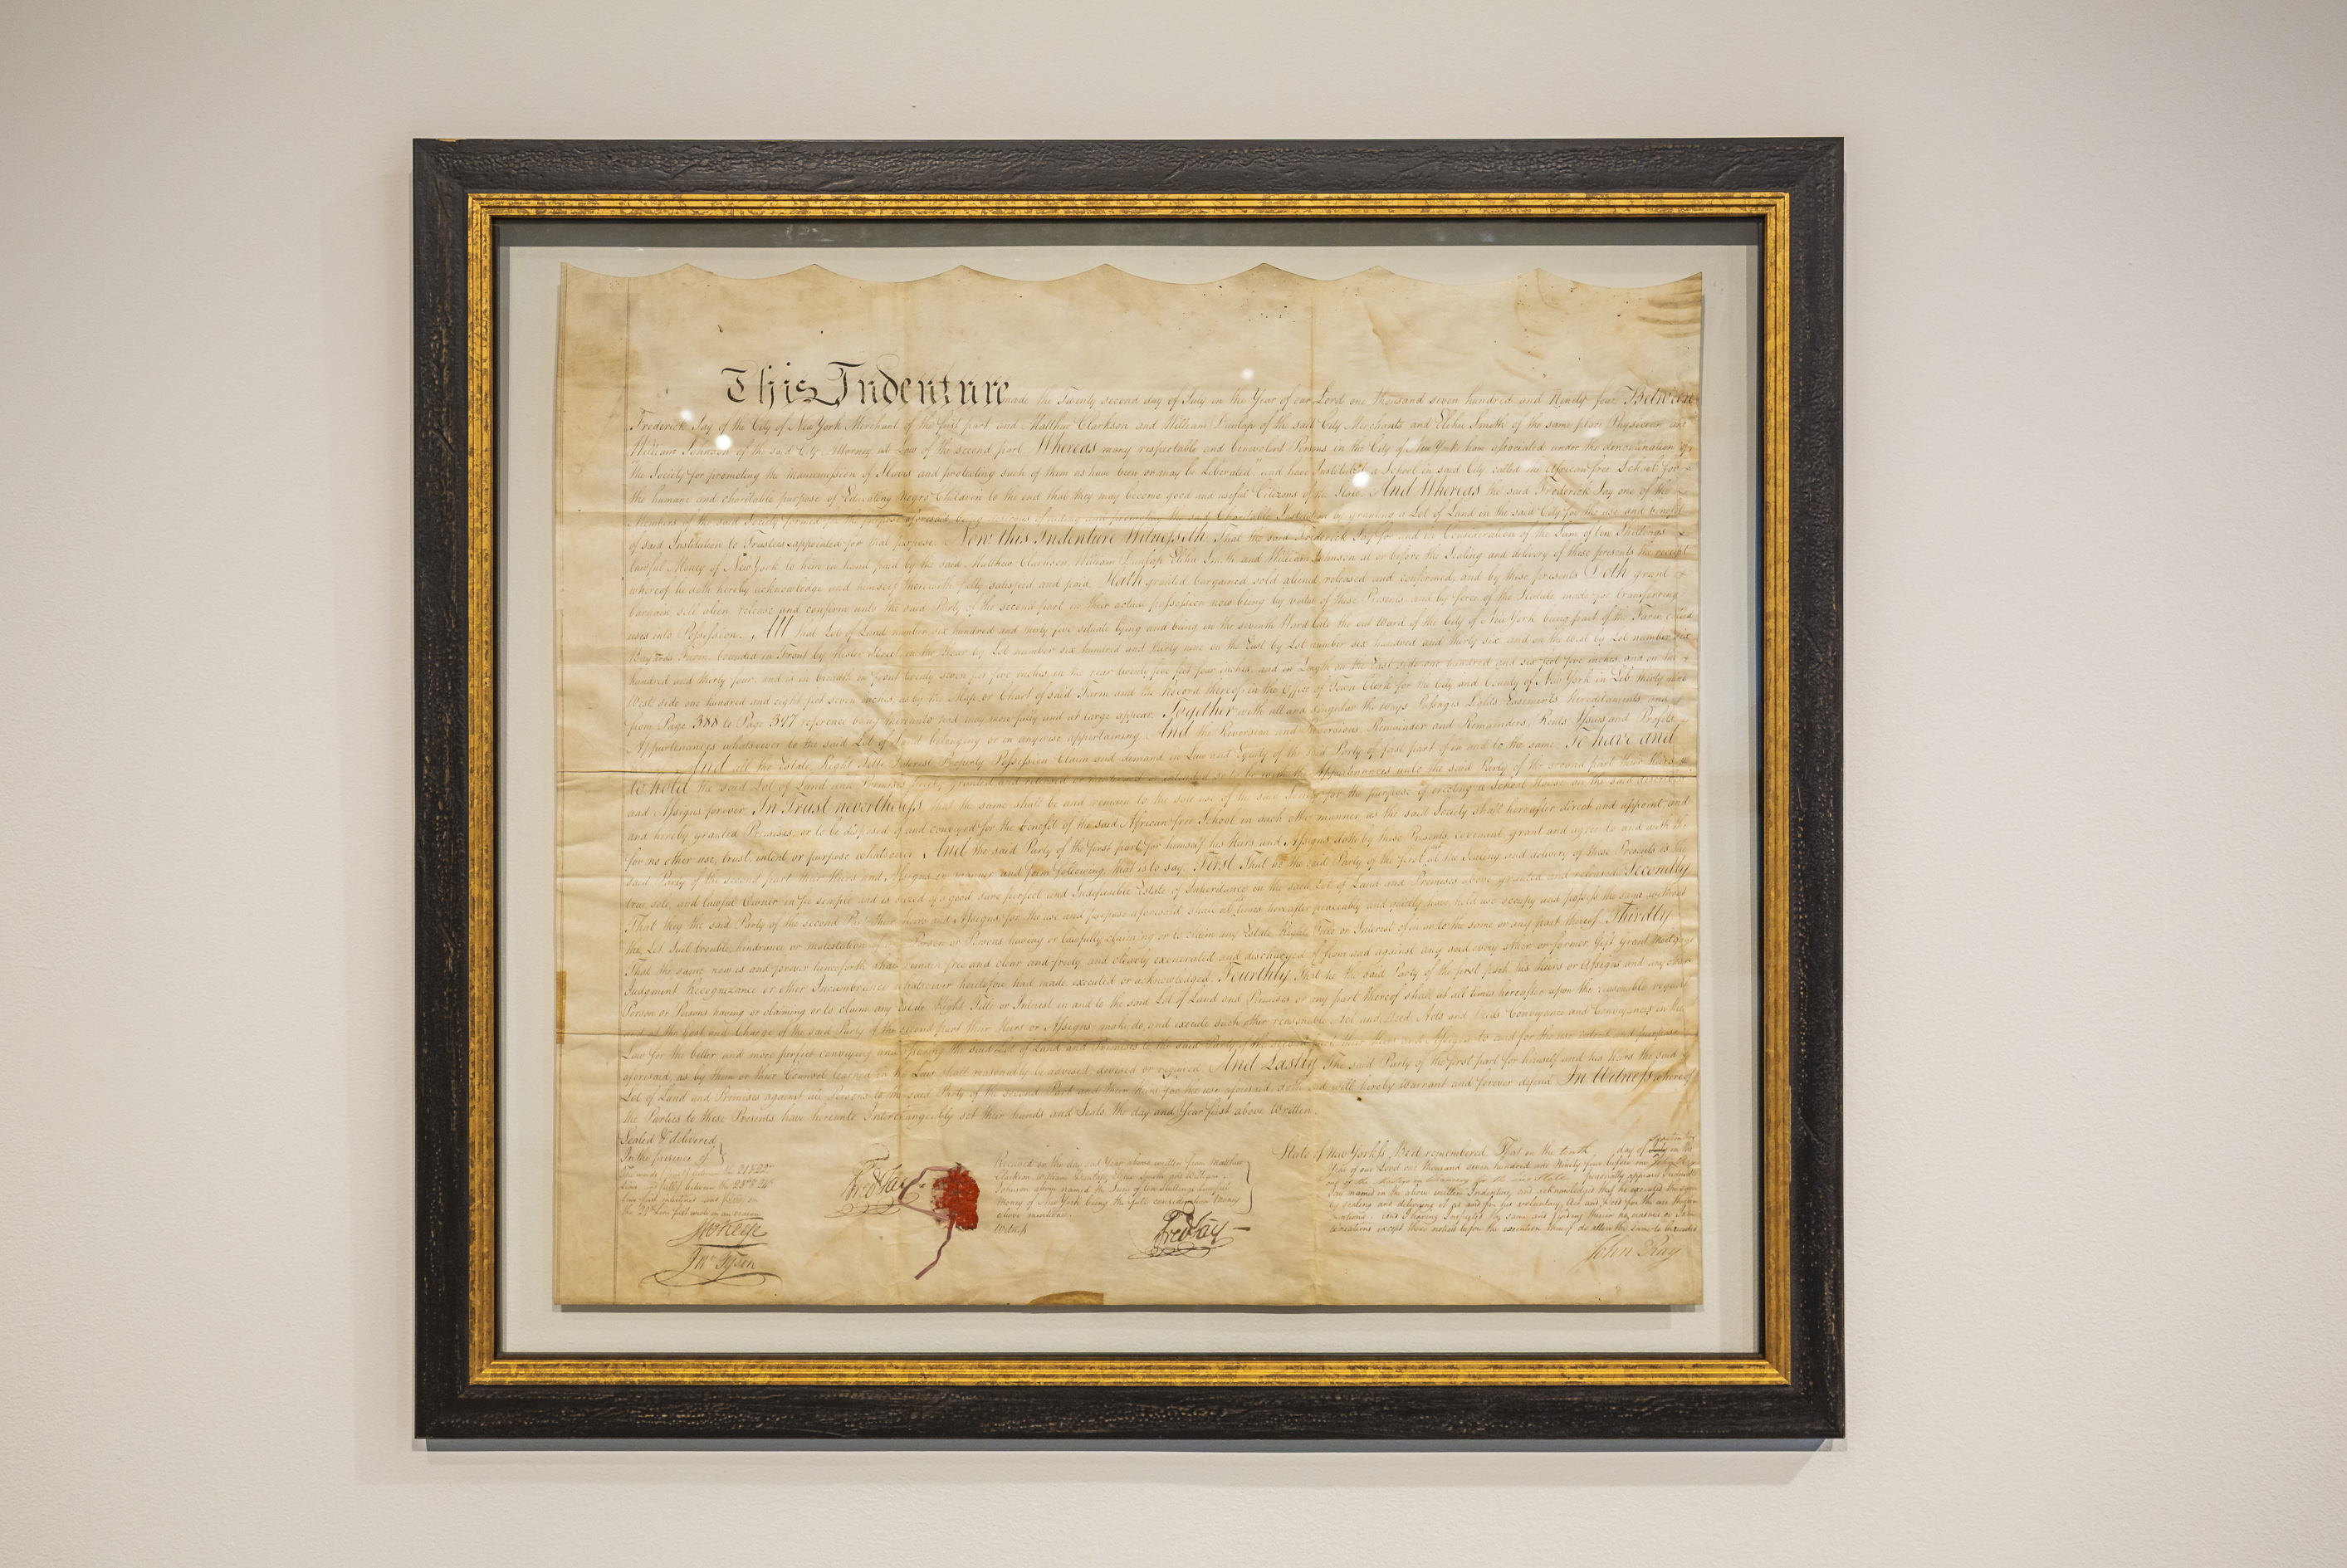 A 1794 land deed for the first African Free School location in lower Manhattan.